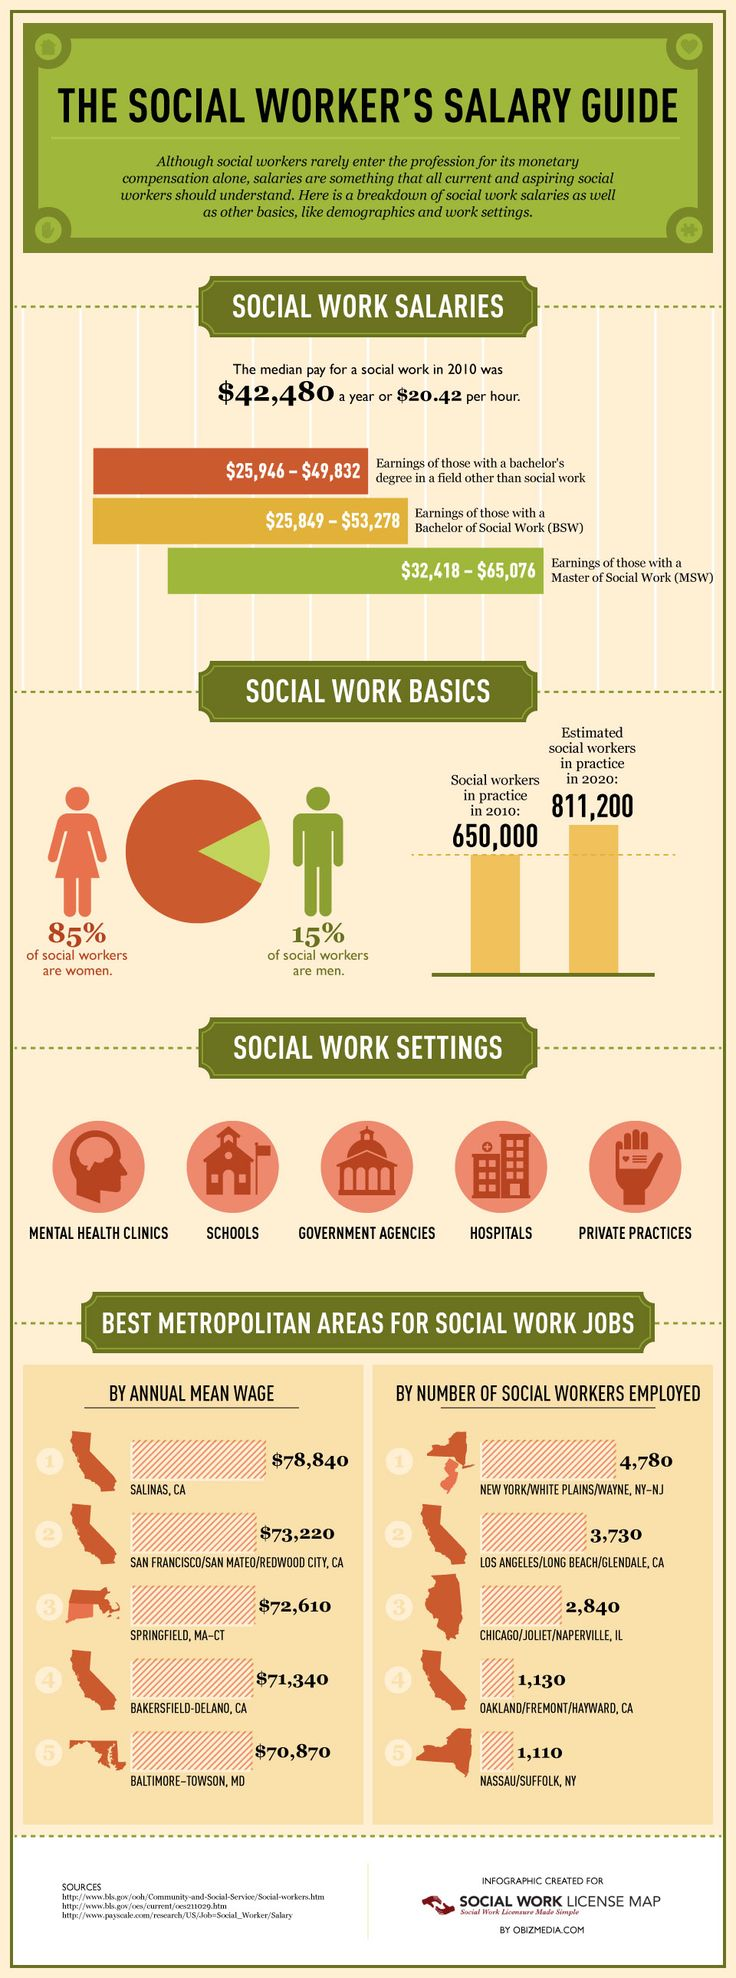 The Social Worker's Salary Guide